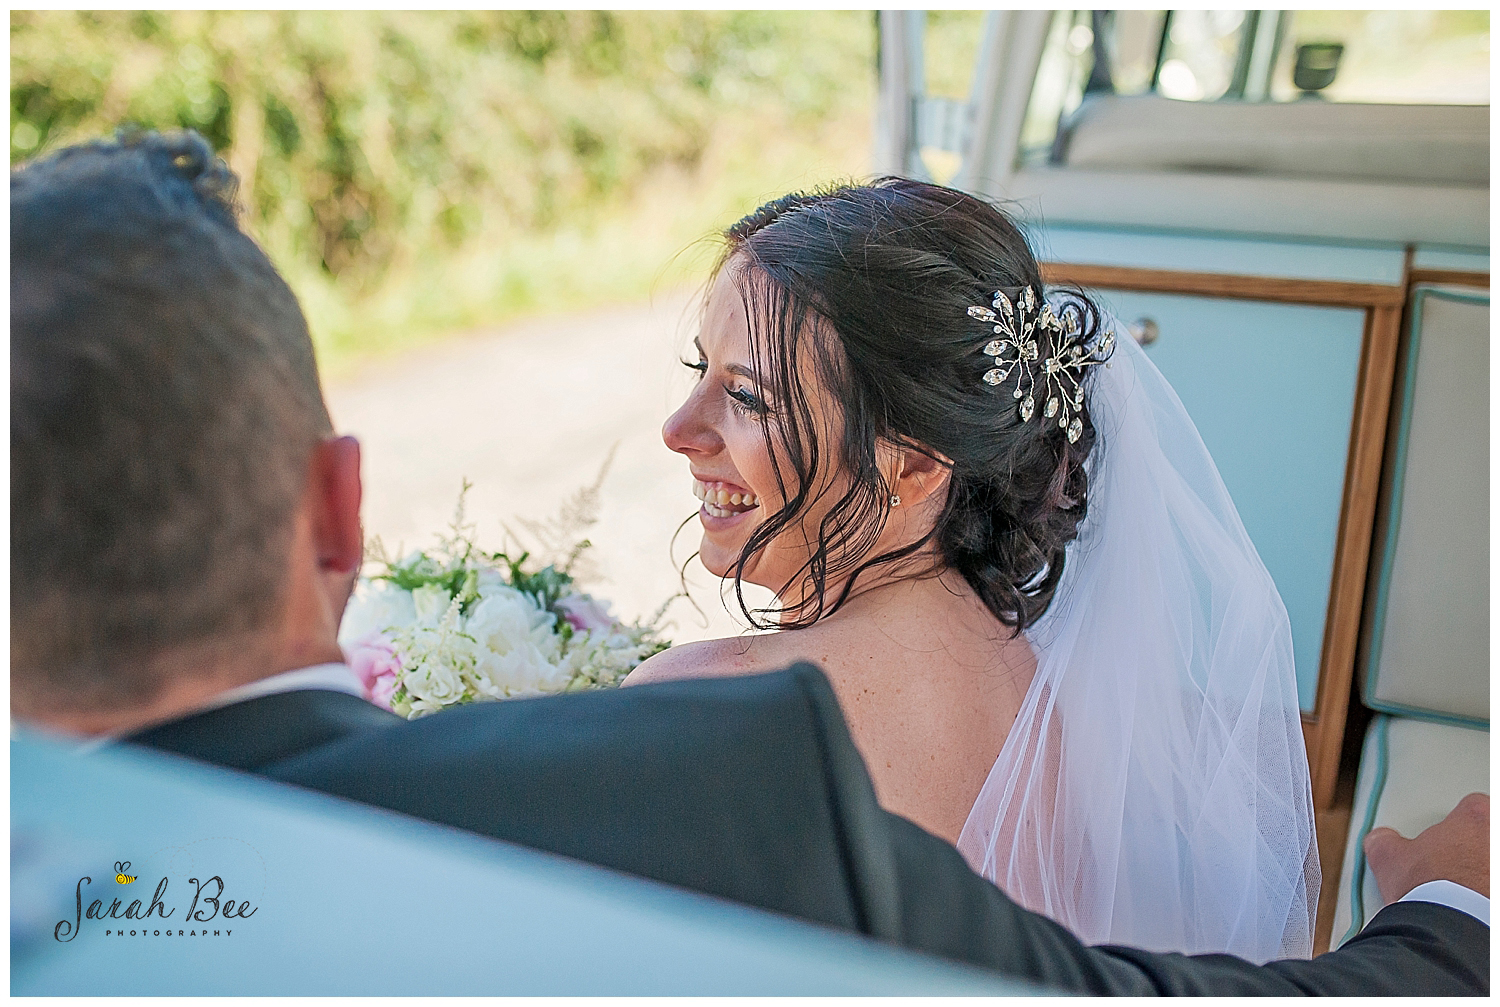 documentory wedding photography with sarah bee photography, wedding photography, wedding photographer at 315 bar and restaurant huddersfield, nateral wedding photography_0386.jpg